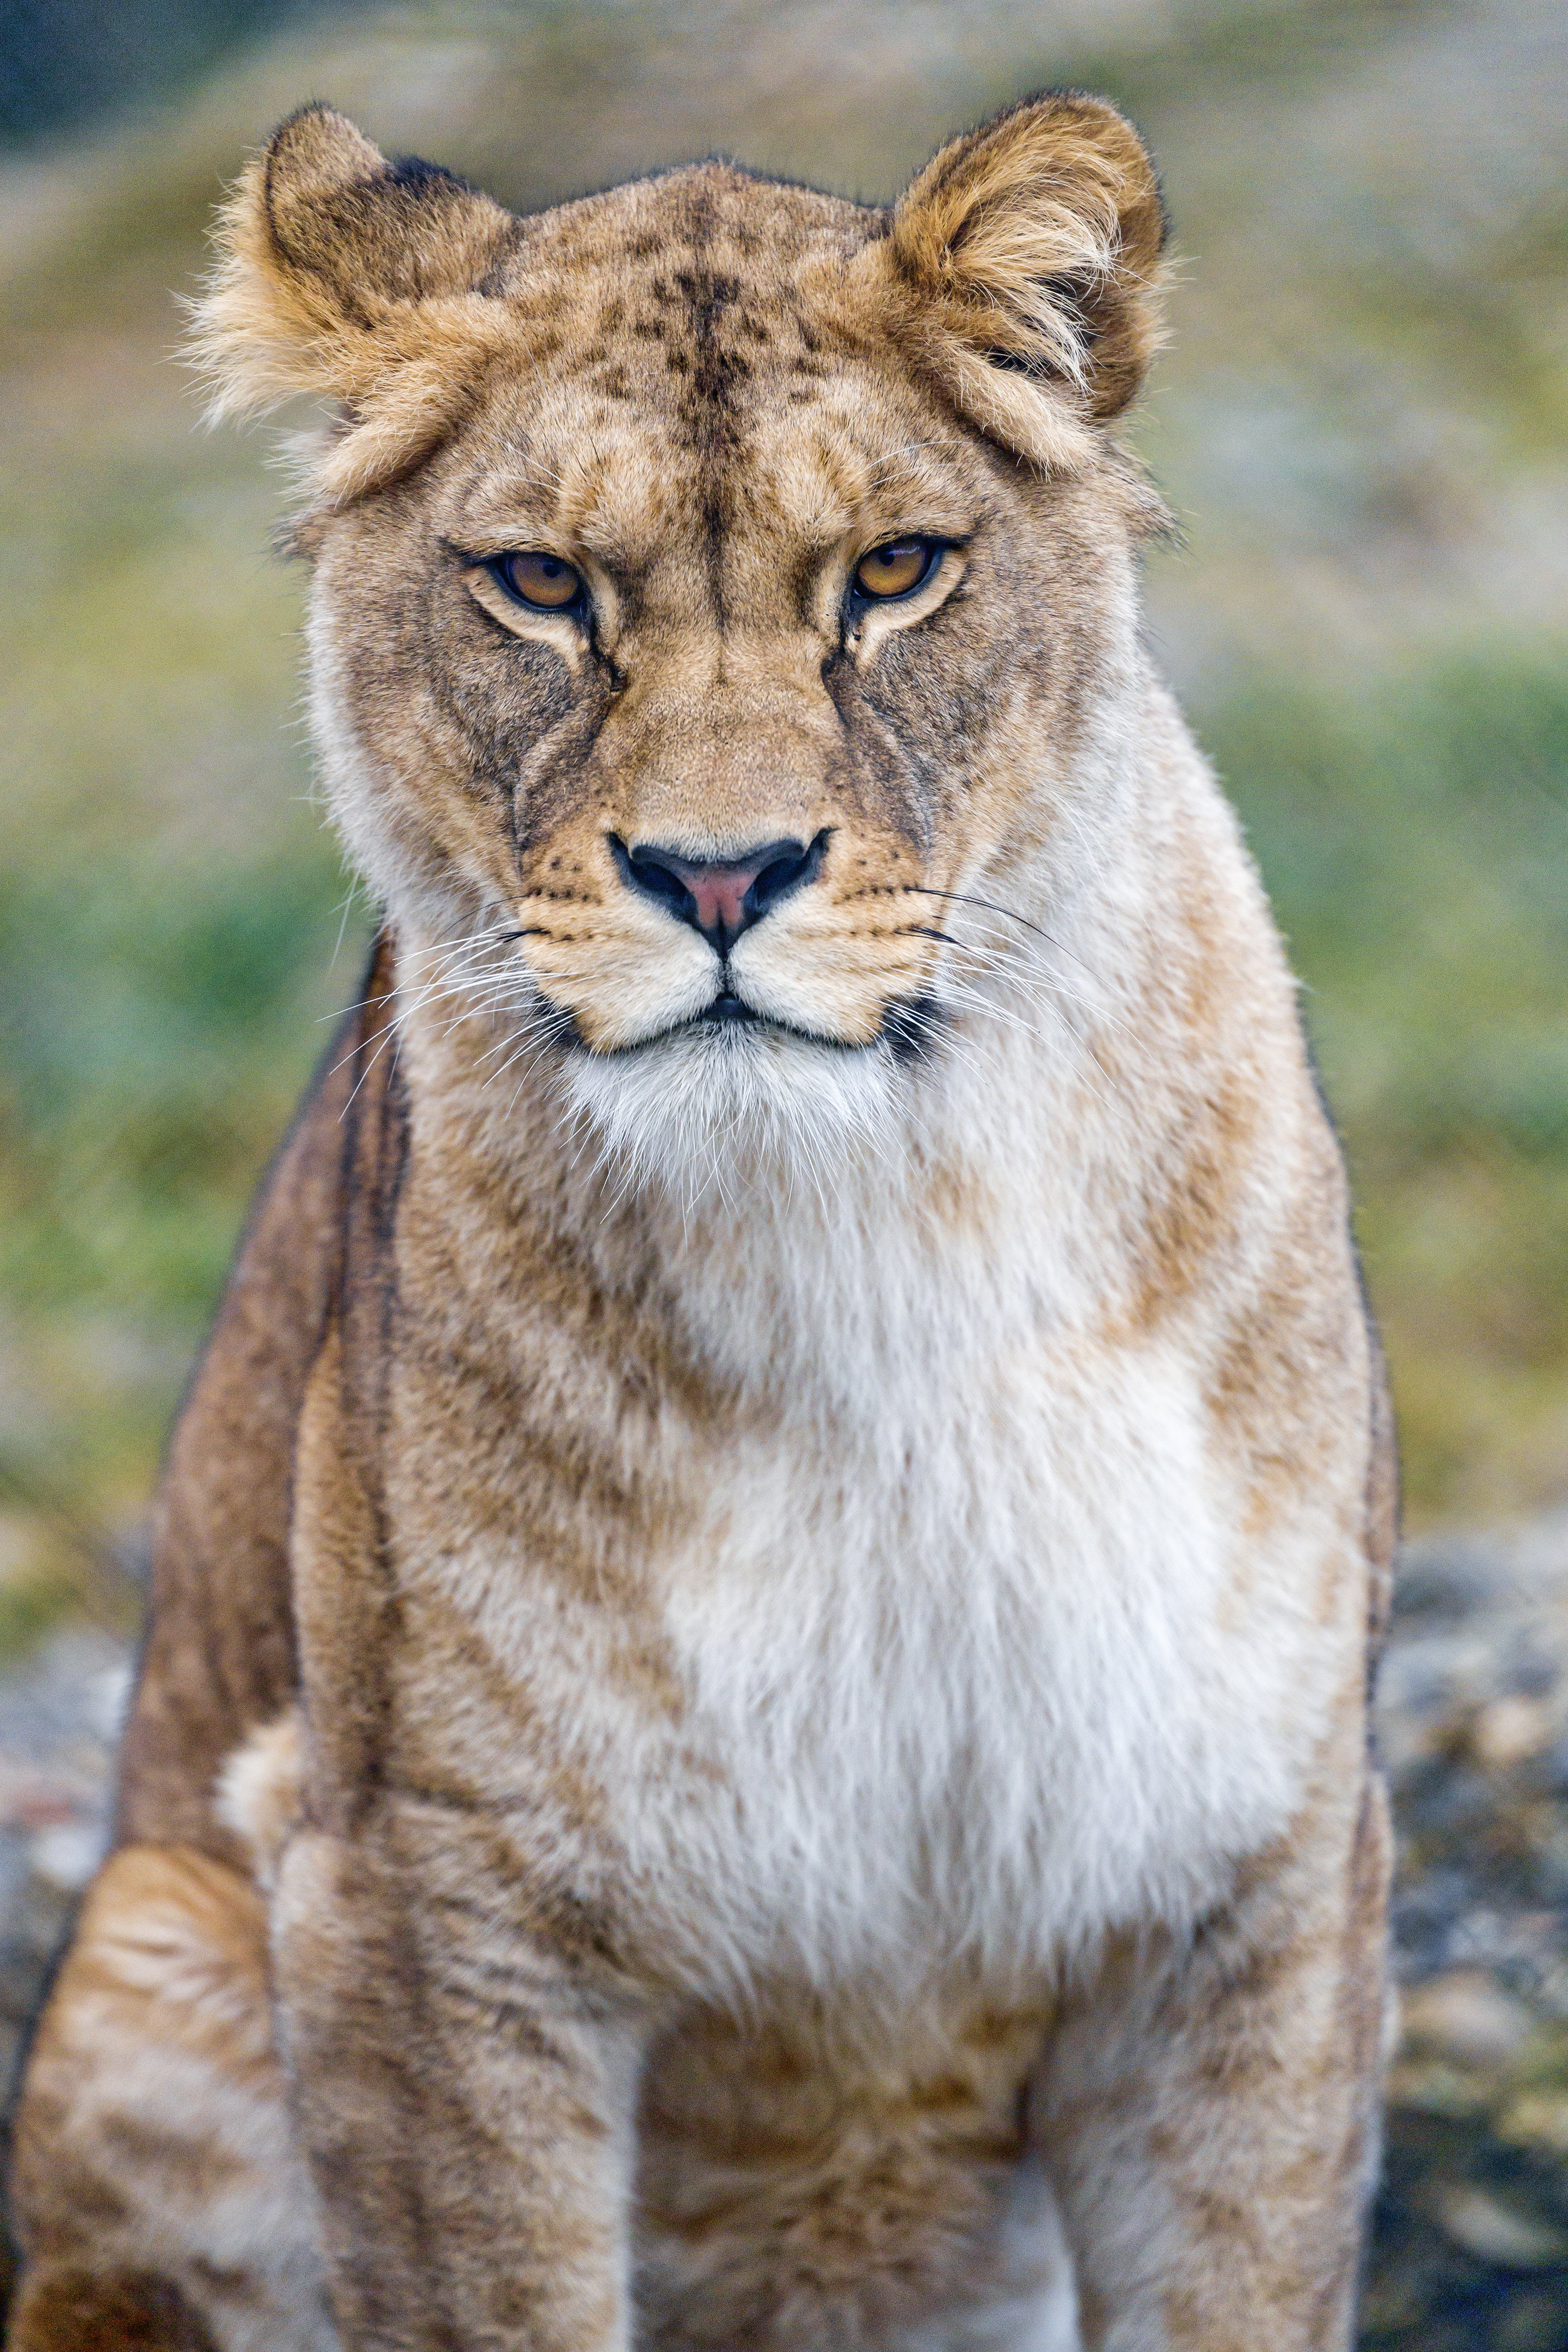 135155 download wallpaper Animals, Lioness, Predator, Sight, Opinion, Big Cat screensavers and pictures for free